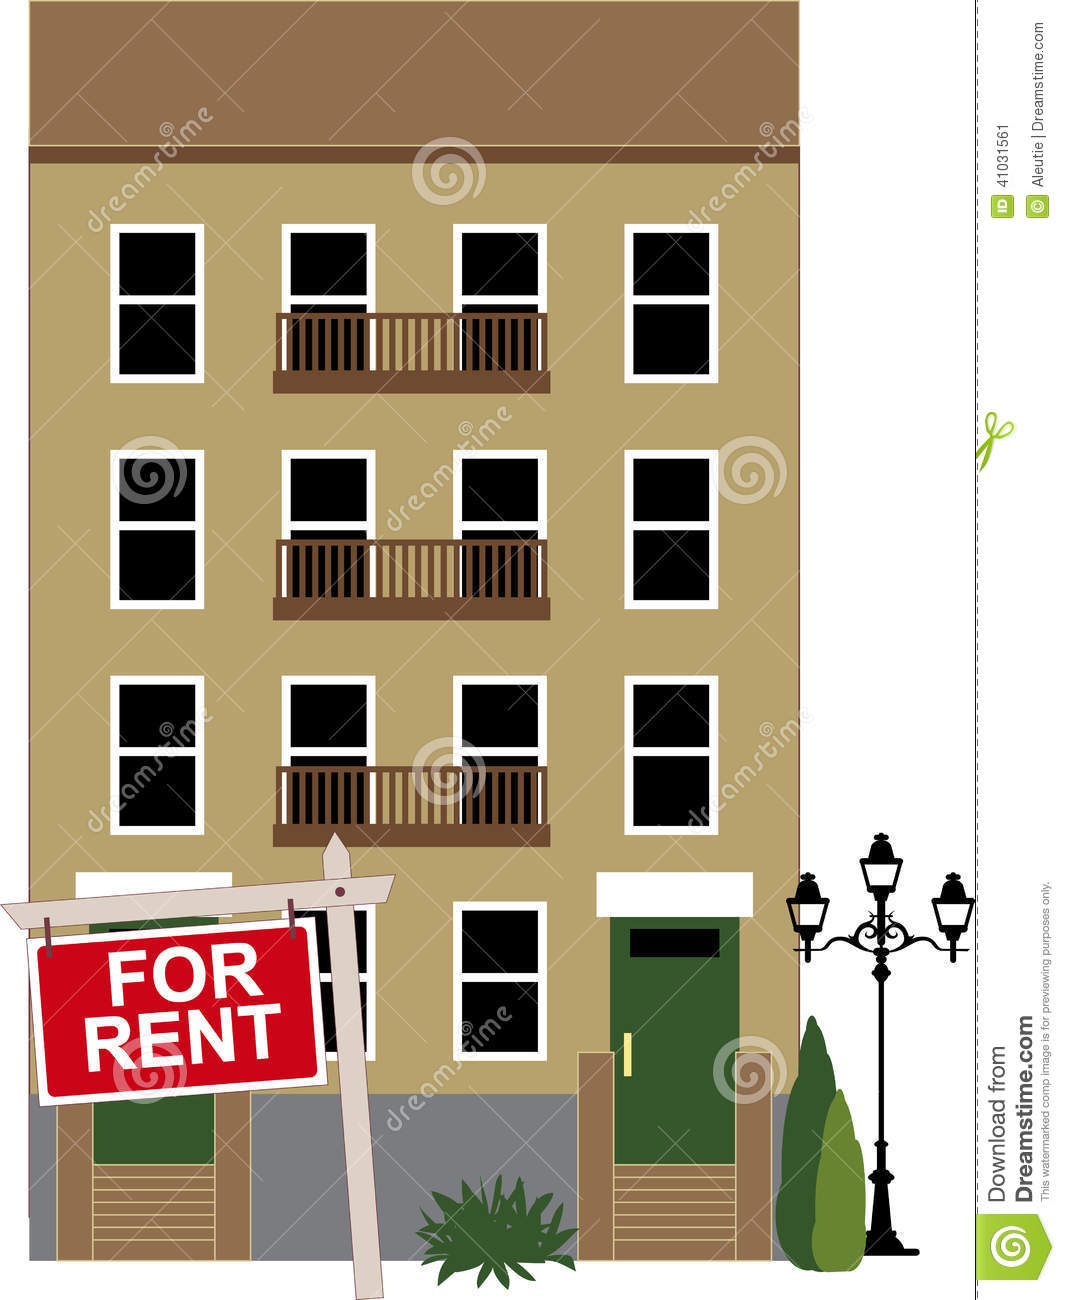 Apartment Buildings For Rent: Apartment For Rent Stock Vector